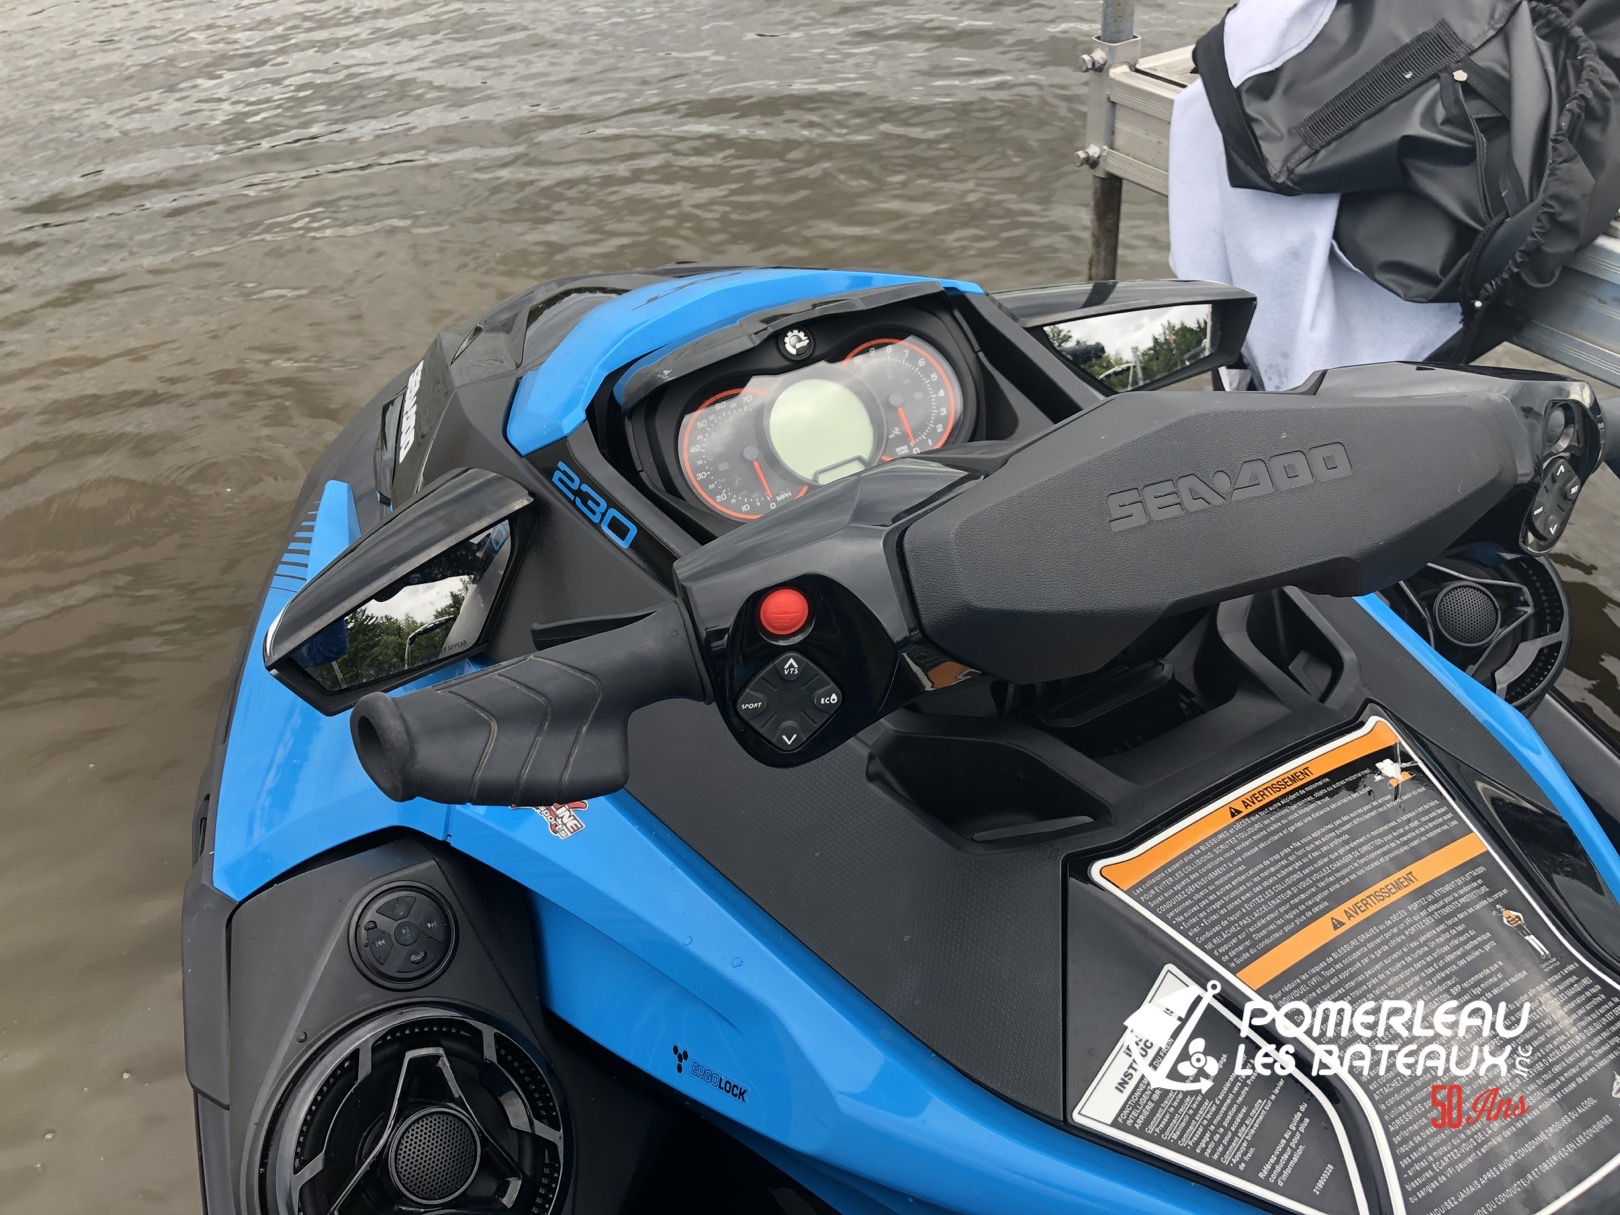 Seadoo RXT 230 - Photo 19-08-23 16 23 02